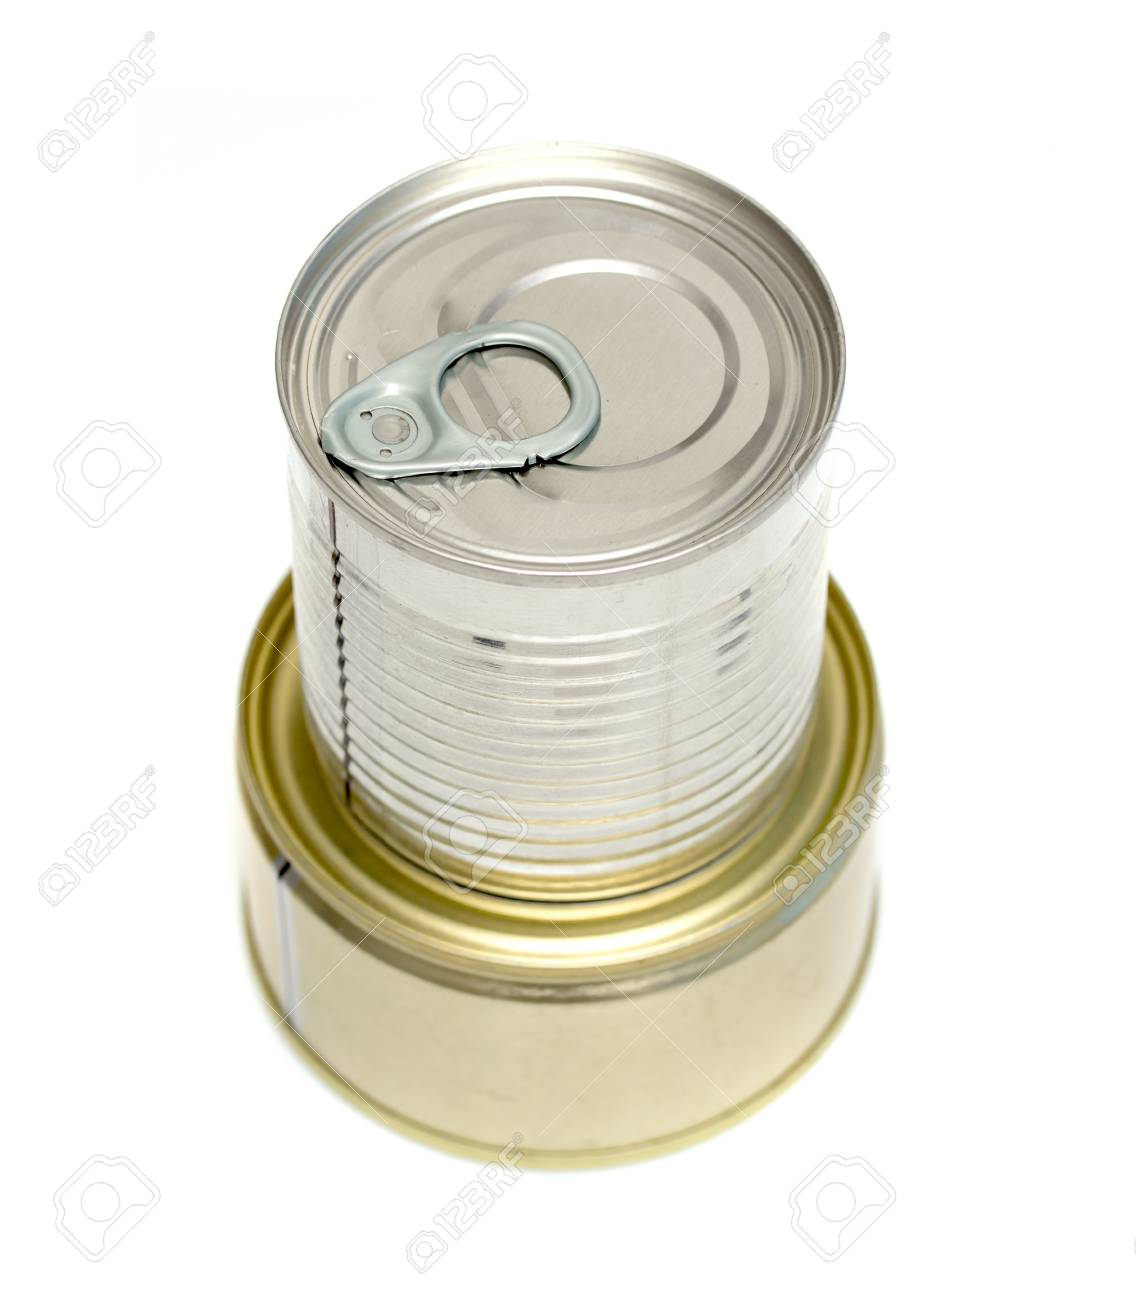 canned meat on a white background Stock Photo - 20734097